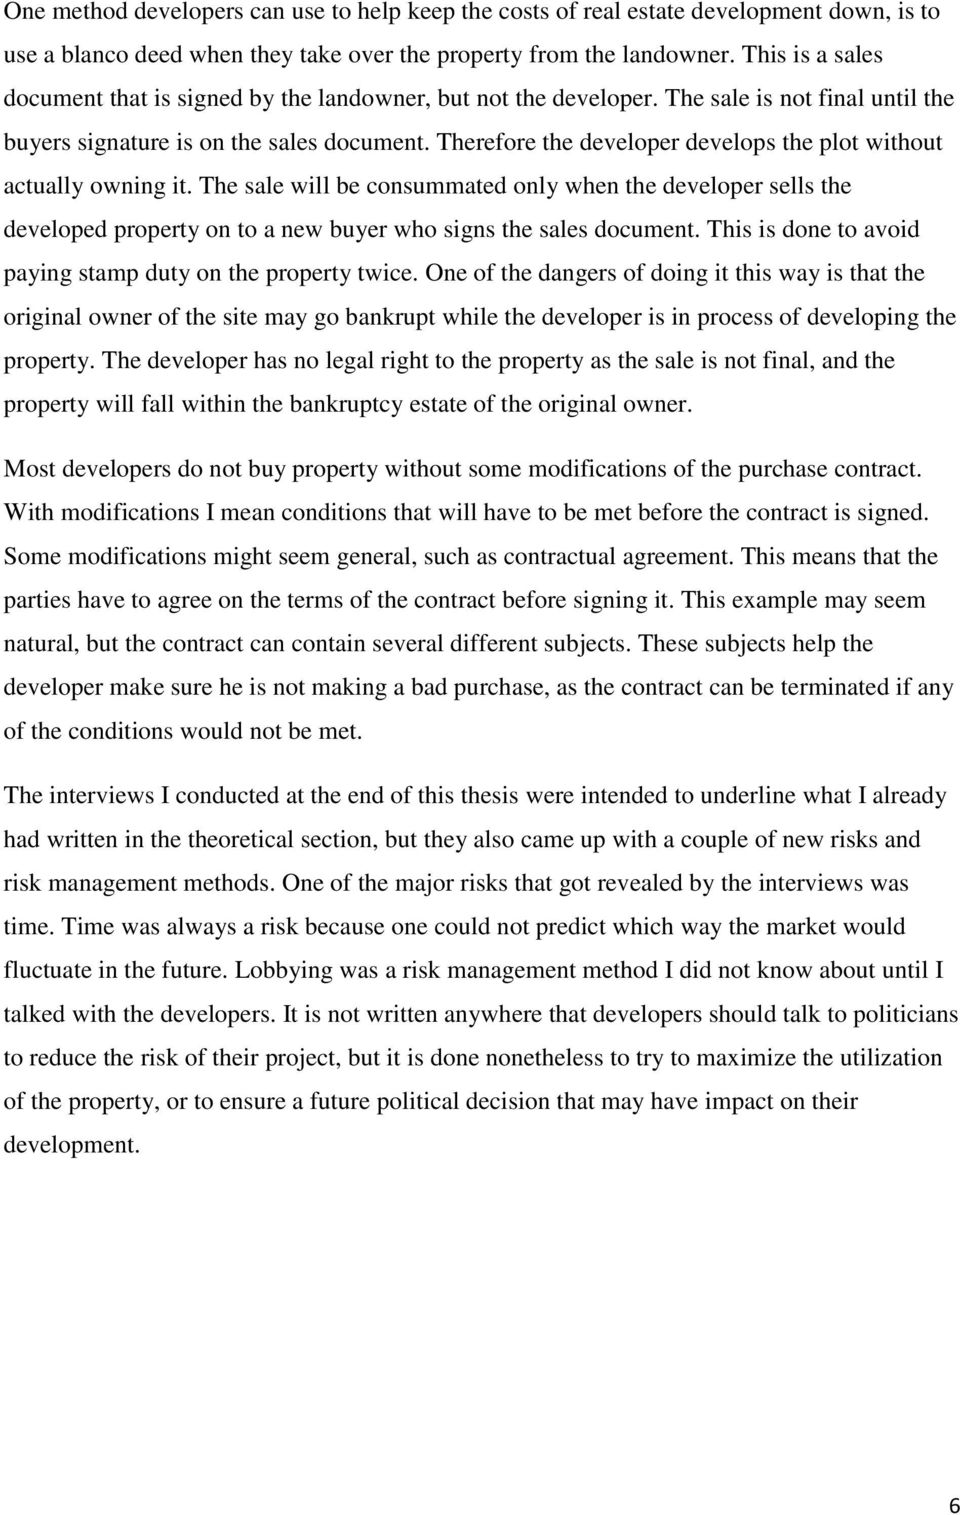 Therefore the developer develops the plot without actually owning it. The sale will be consummated only when the developer sells the developed property on to a new buyer who signs the sales document.